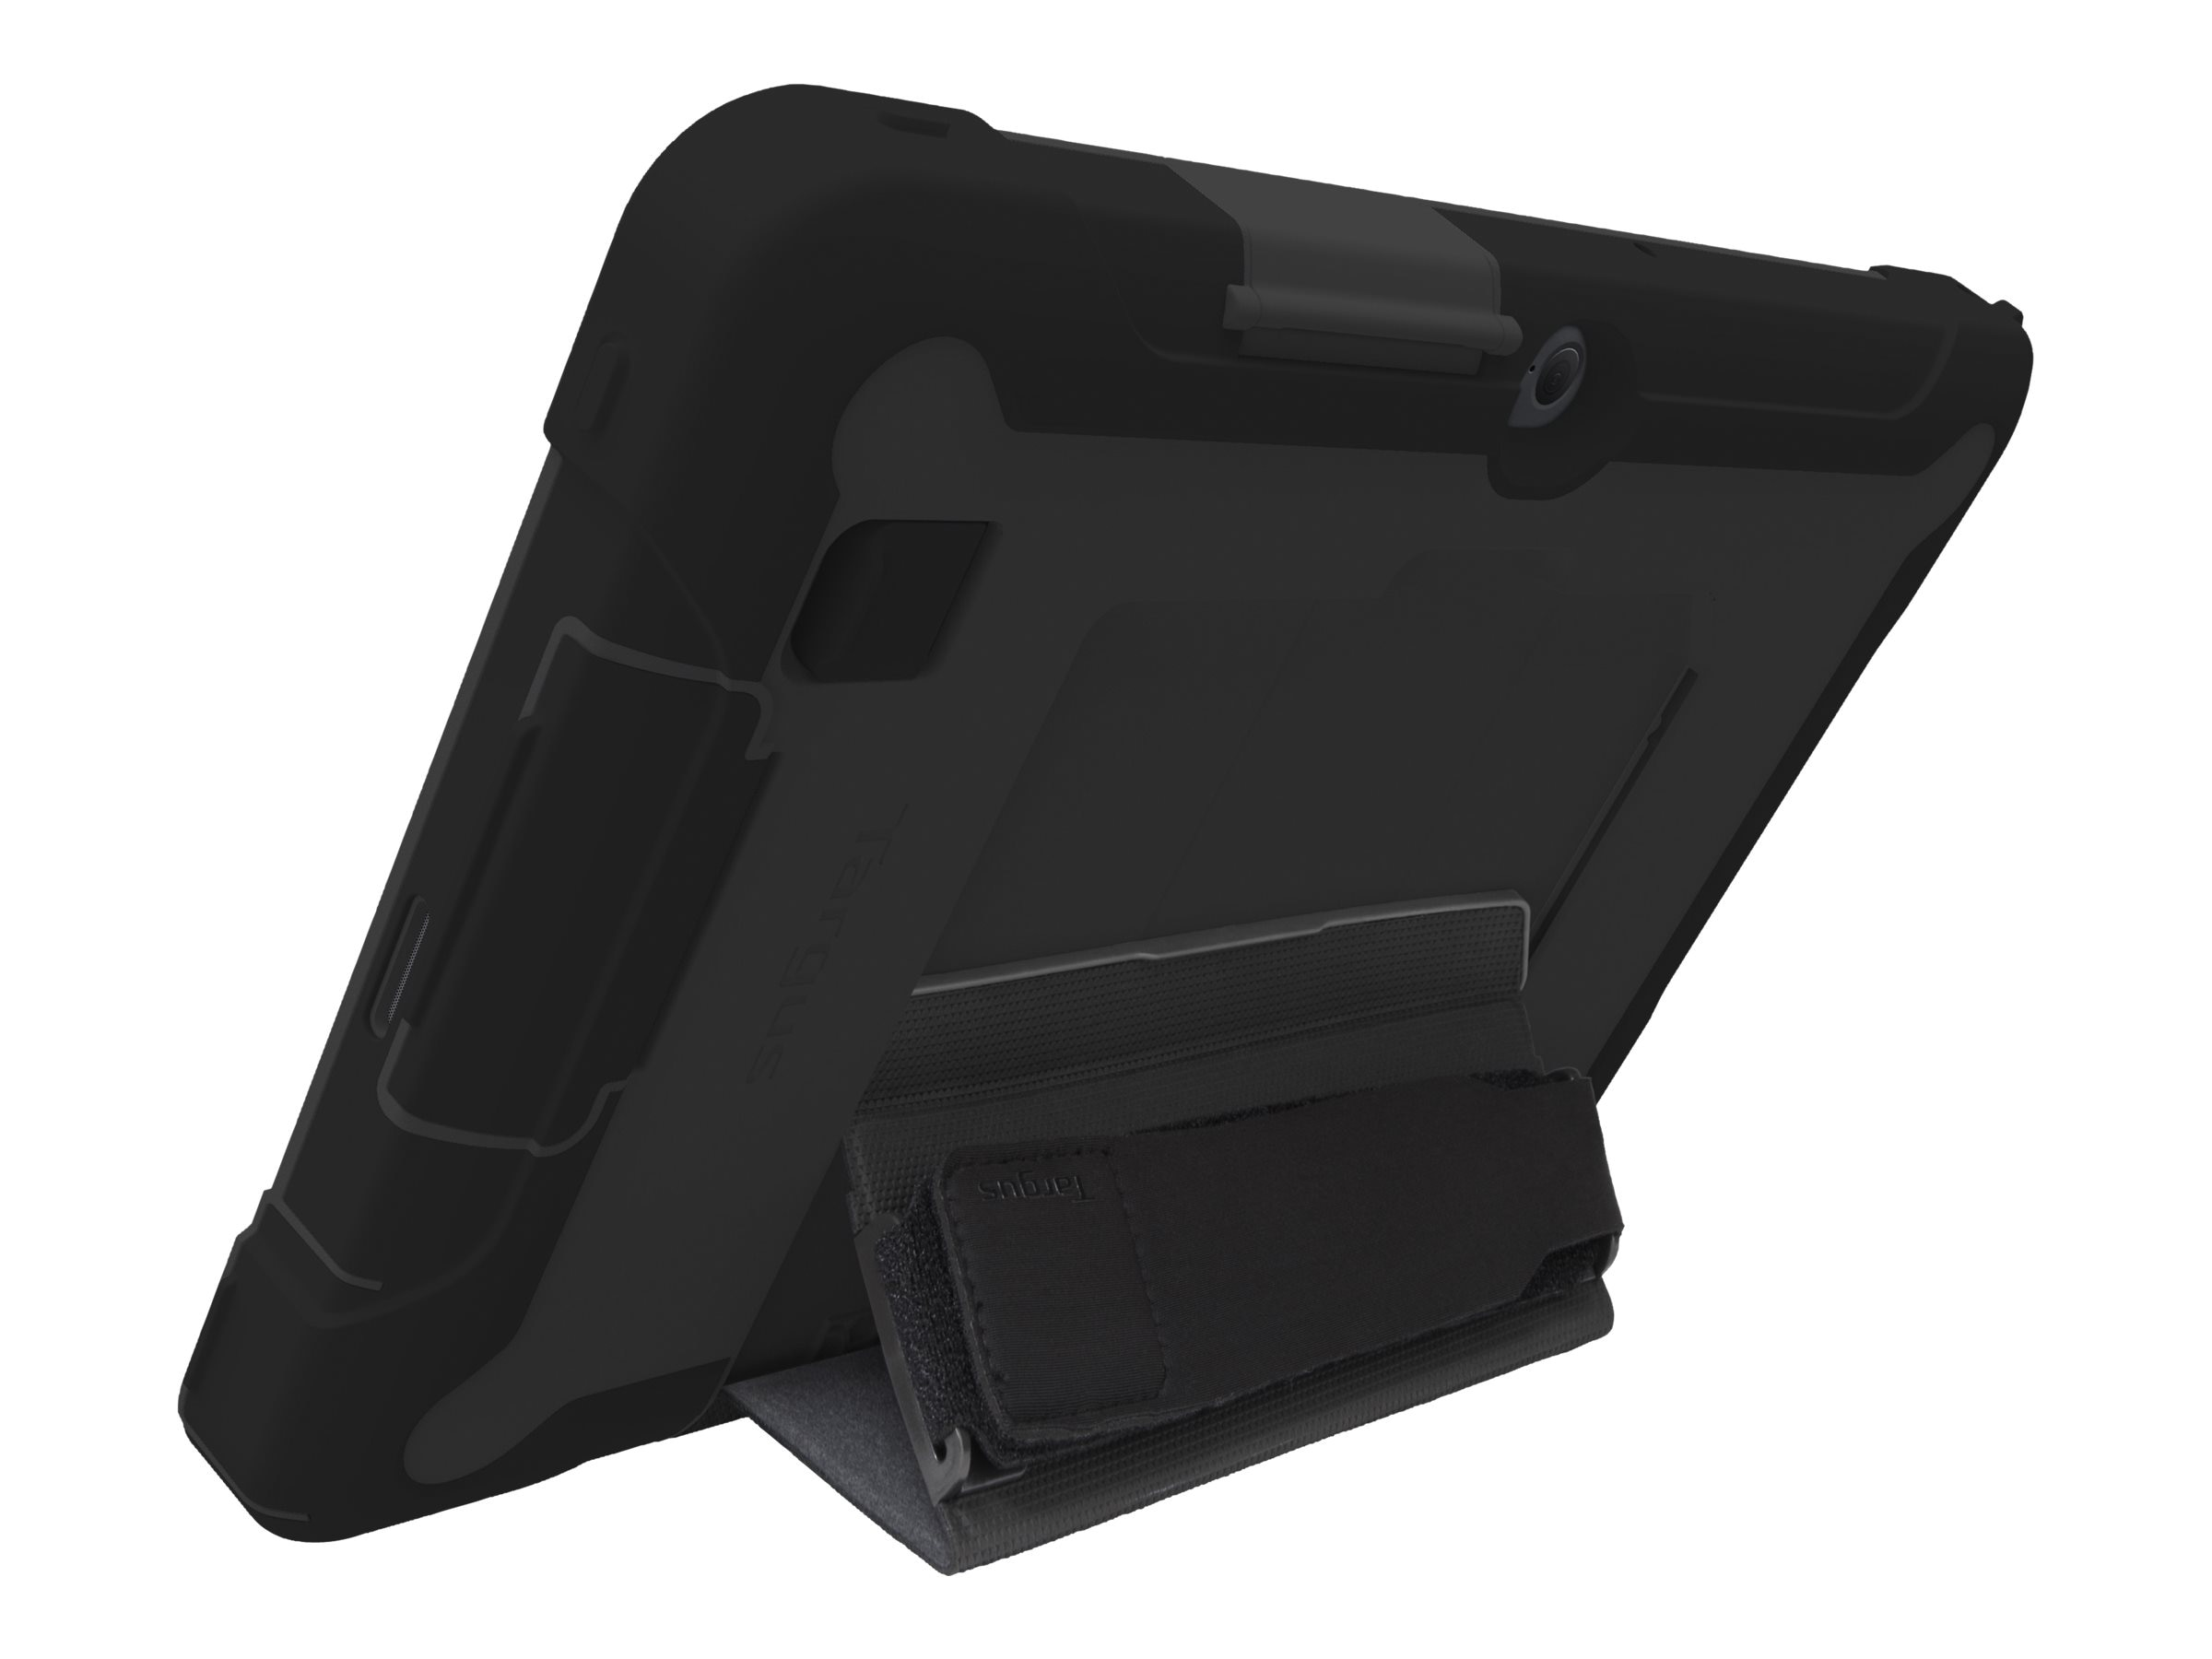 Dell Targus SafePort Rugged Max Pro Case for Latitude 11 5179 2-in-1, Black, THD462USZ